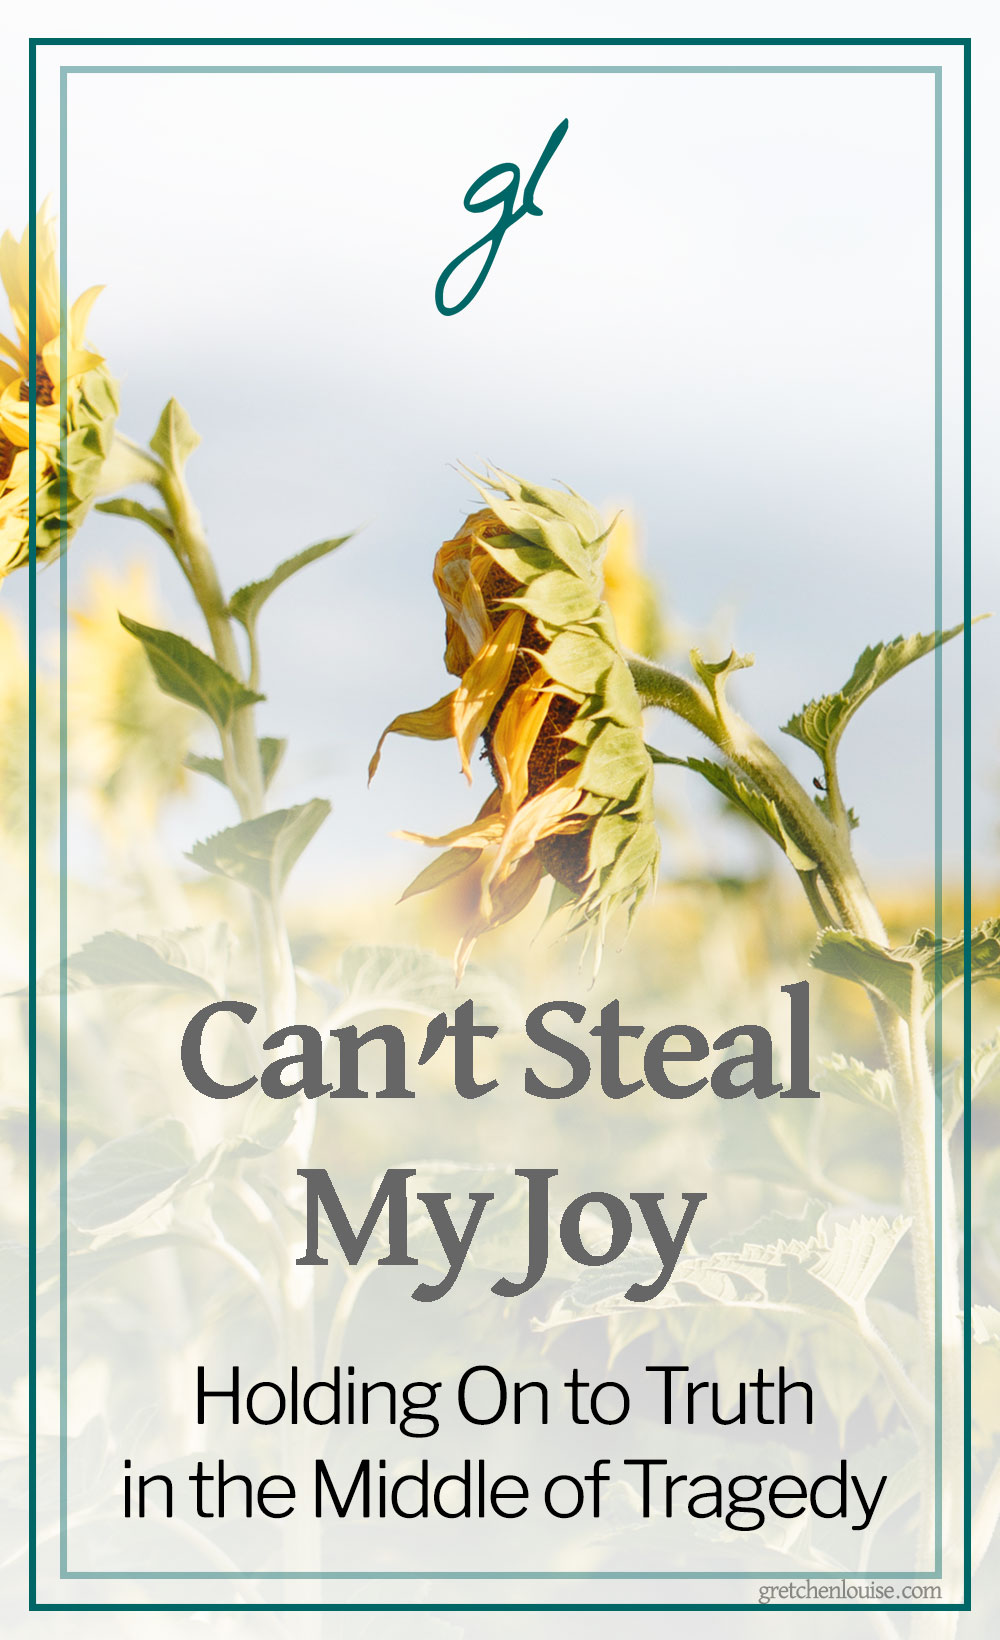 The lessons Bekah shares in Can't Steal My Joy are applicable to everyday life--not just life lived in the midst of incredible tragedy. With humility and vulnerability, Bekah shares their story, interspersed with excerpts of what she wrote from within the raw depths of their brokenness. via @GretLouise